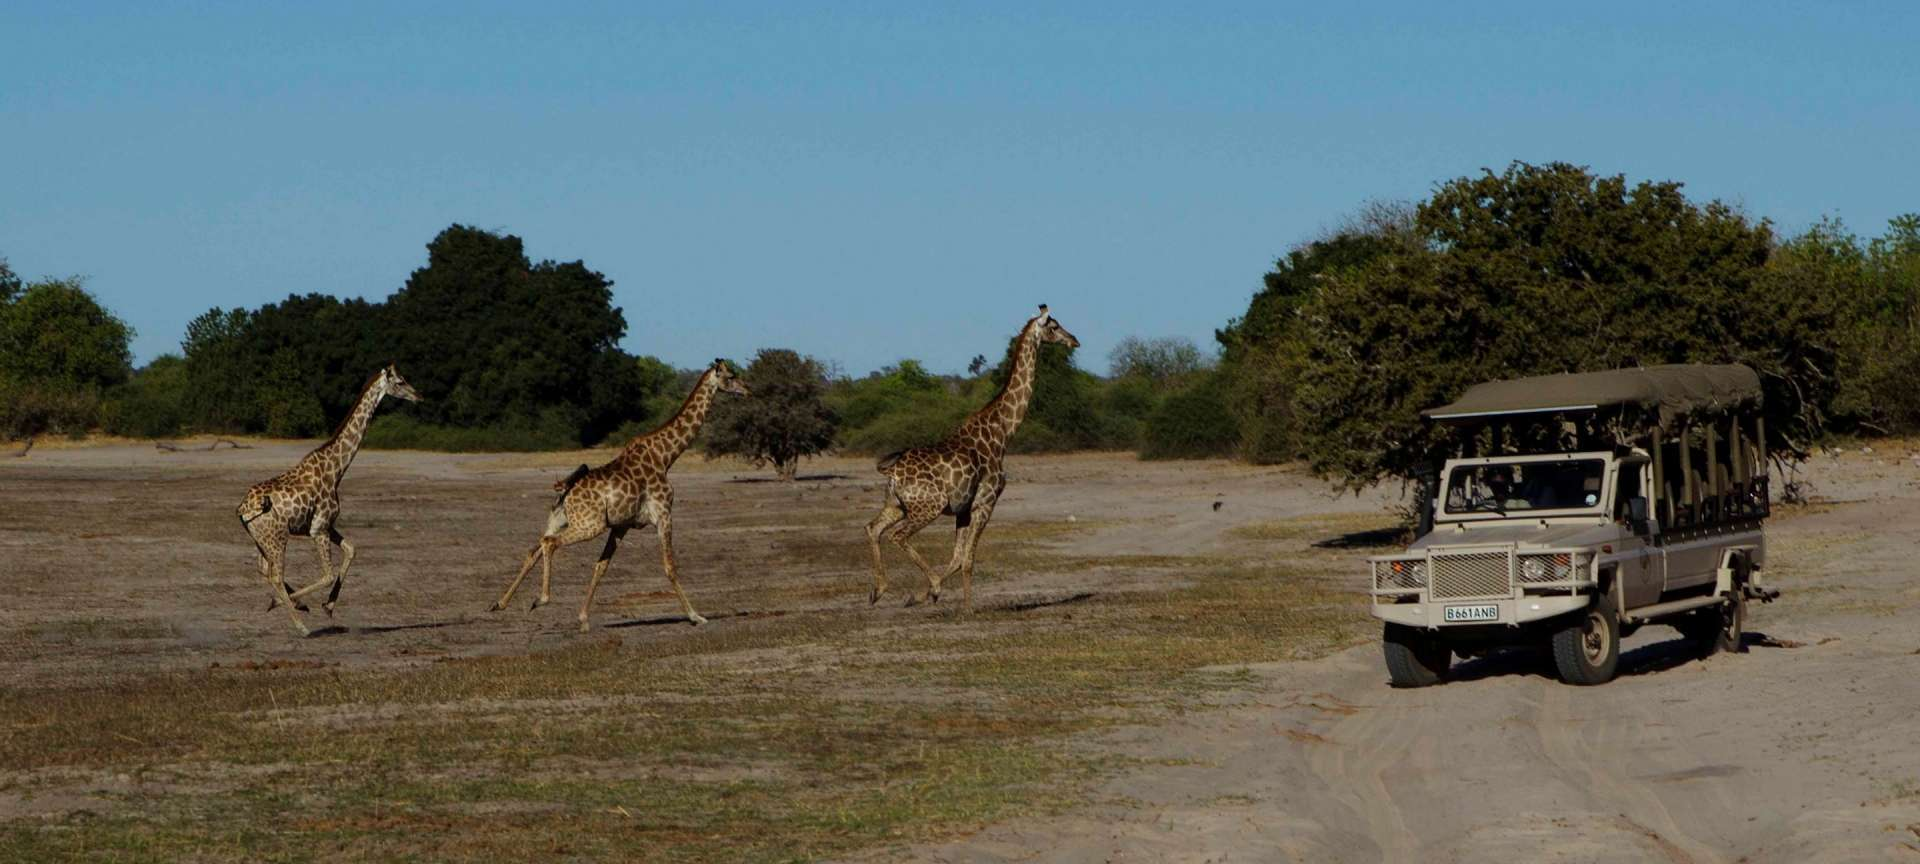 Giraffe running across the path in Botswana